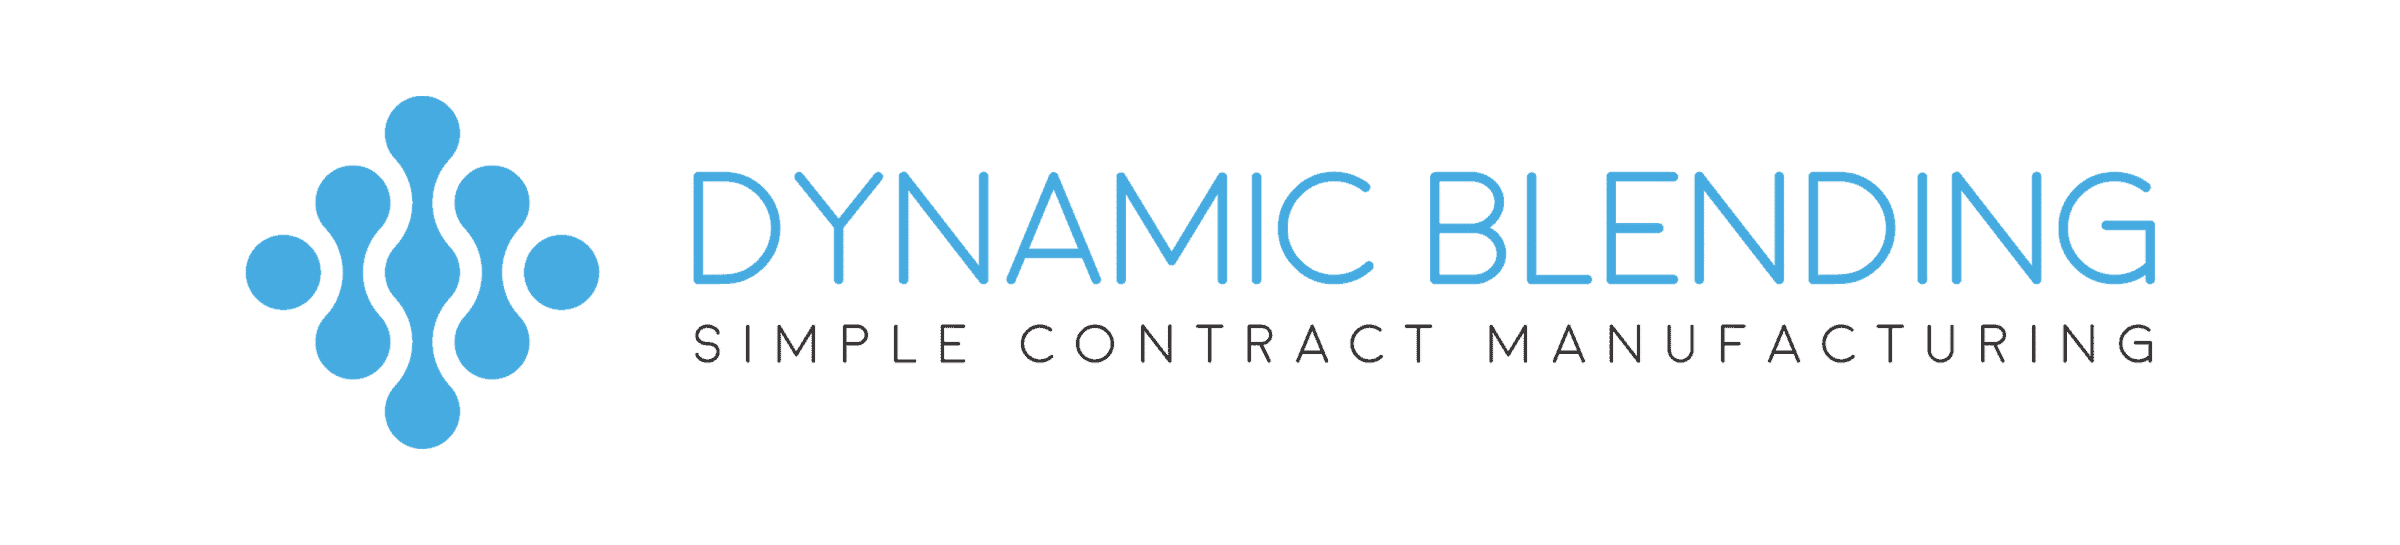 Dynamic Blending is a skin care contract manufacturer.